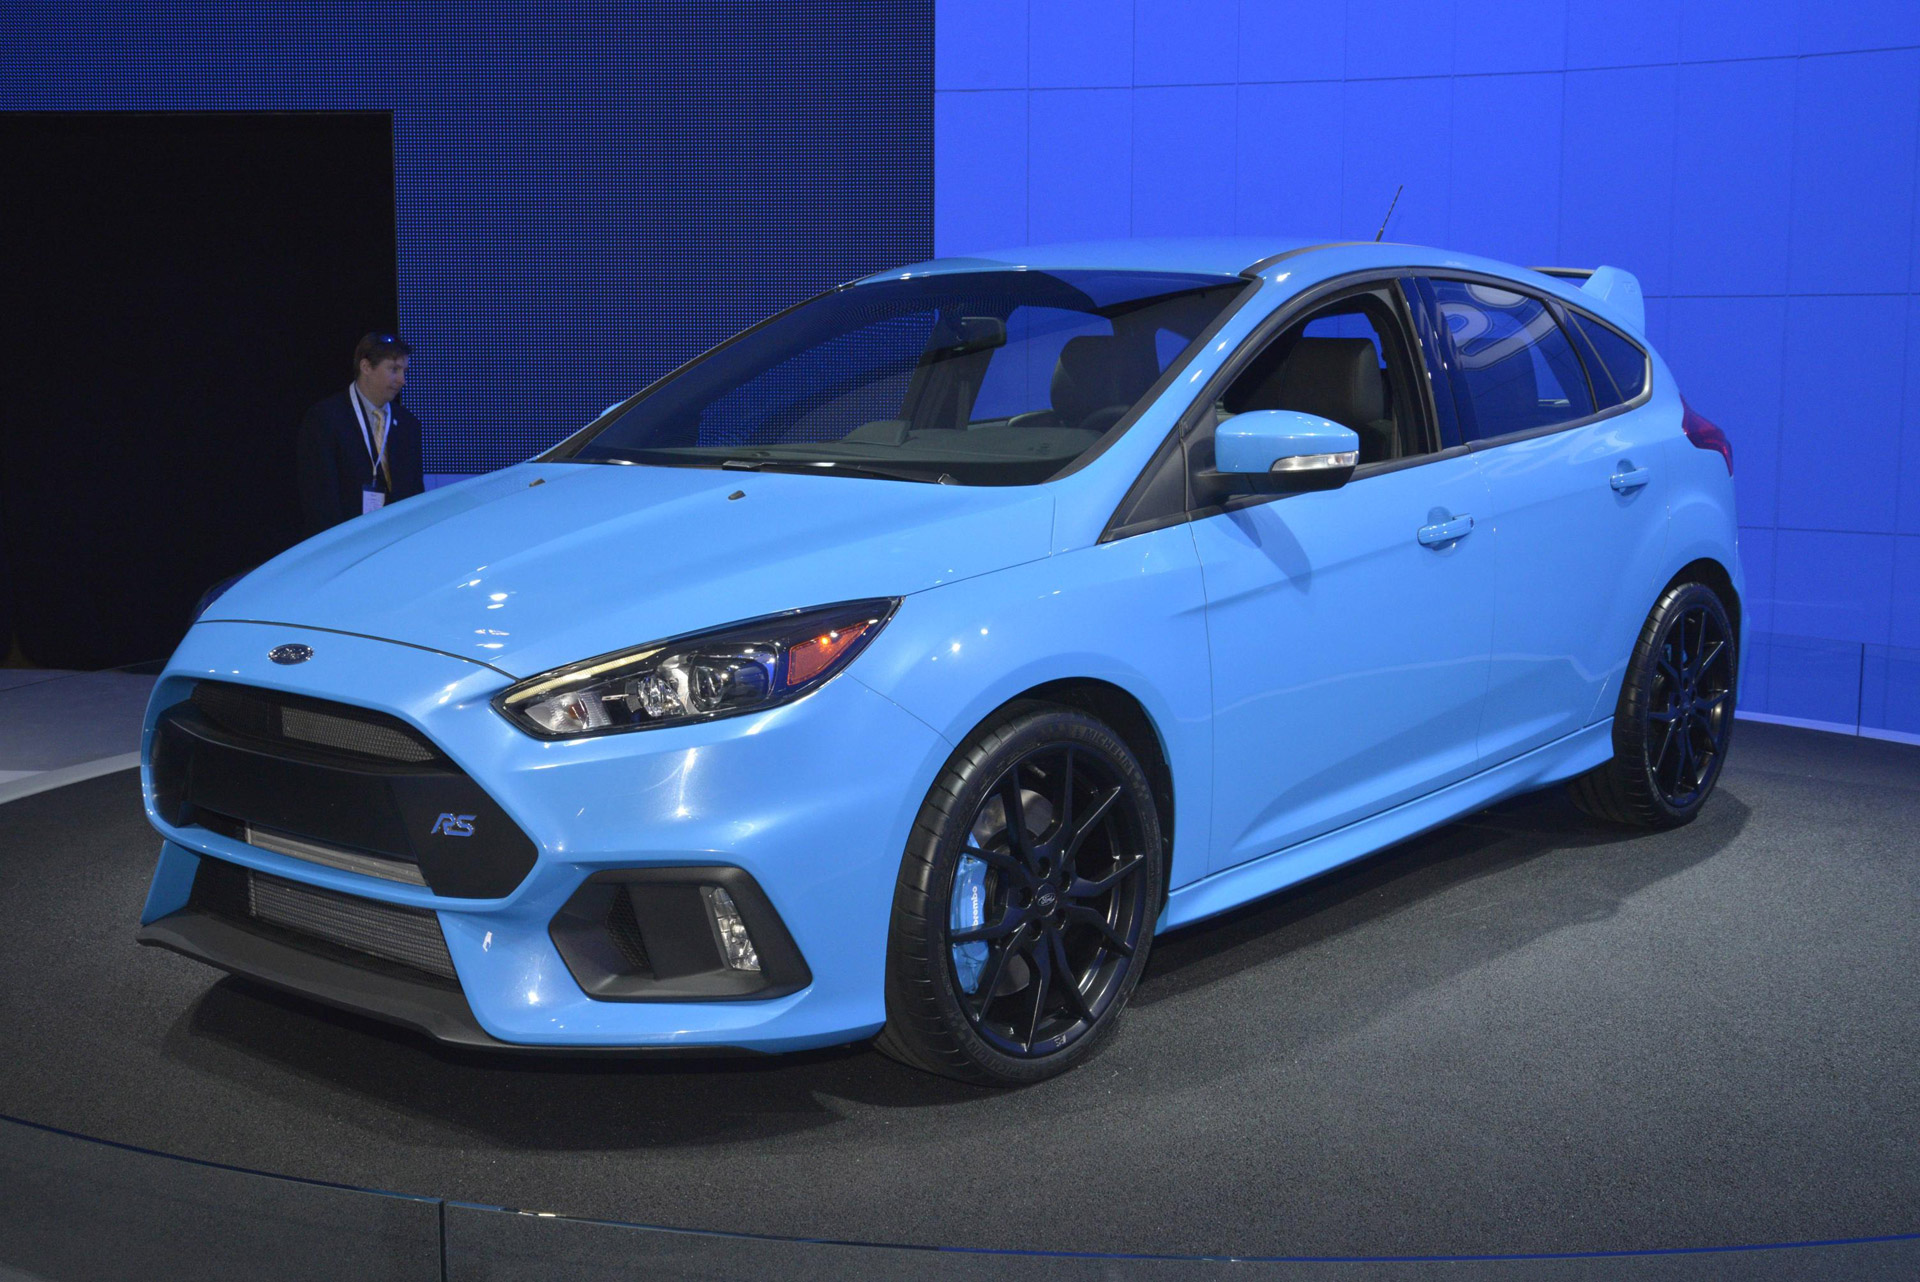 2016 ford focus rs u s specs availability confirmed live photos and video page 2. Black Bedroom Furniture Sets. Home Design Ideas